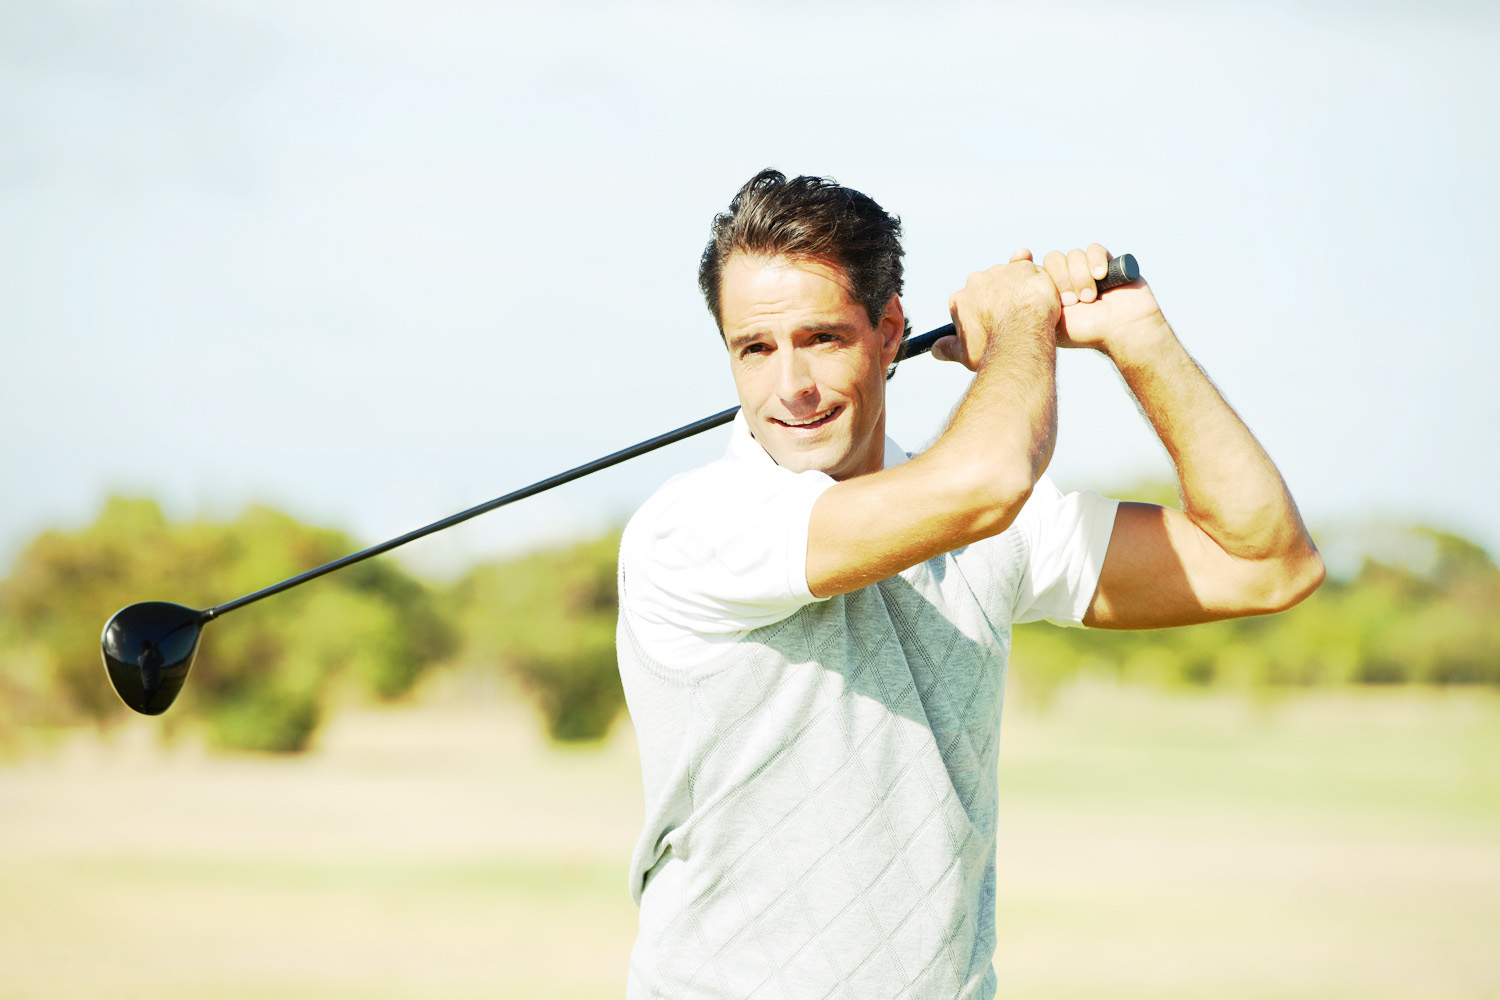 Golf is all about confidence